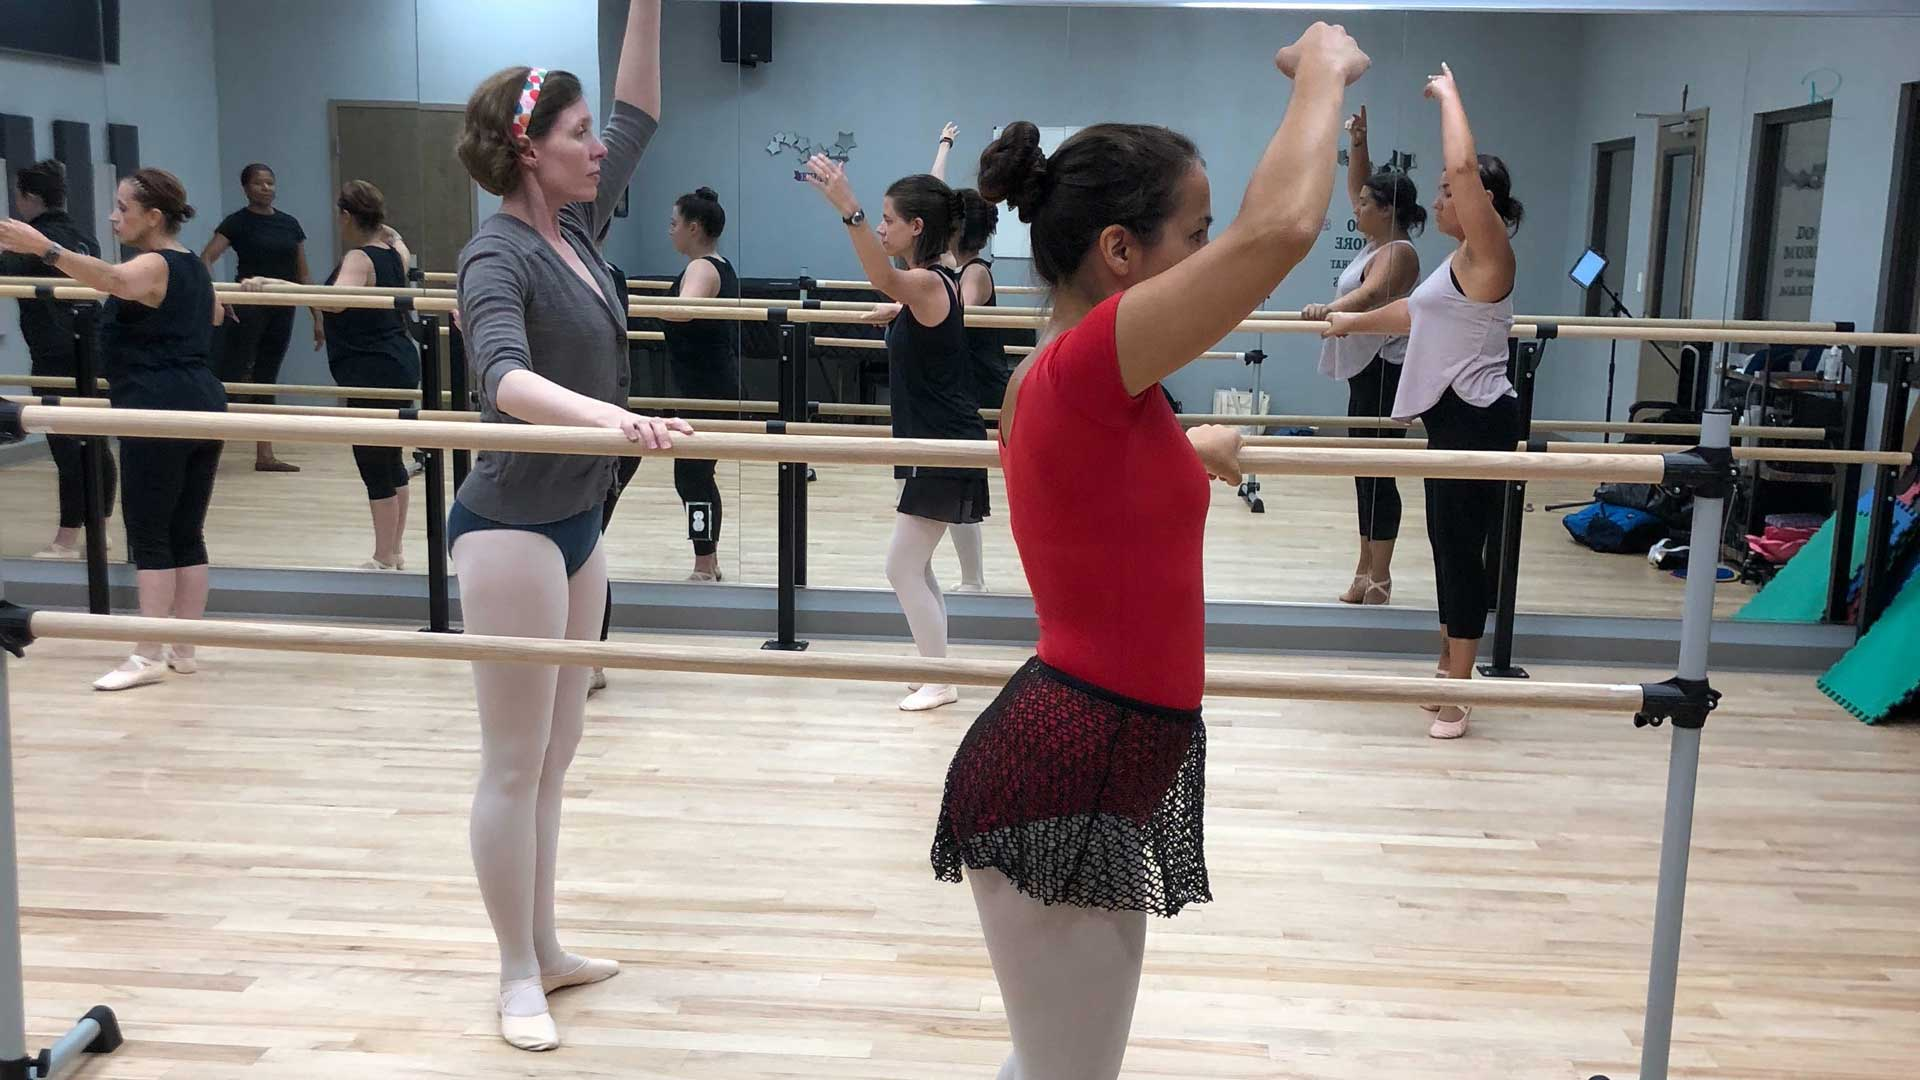 Dance Instruction for Adults in Ballet, Hip-Hop, Tap, Modern, Contemporary and more in New Orleans, Mandeville, Covington